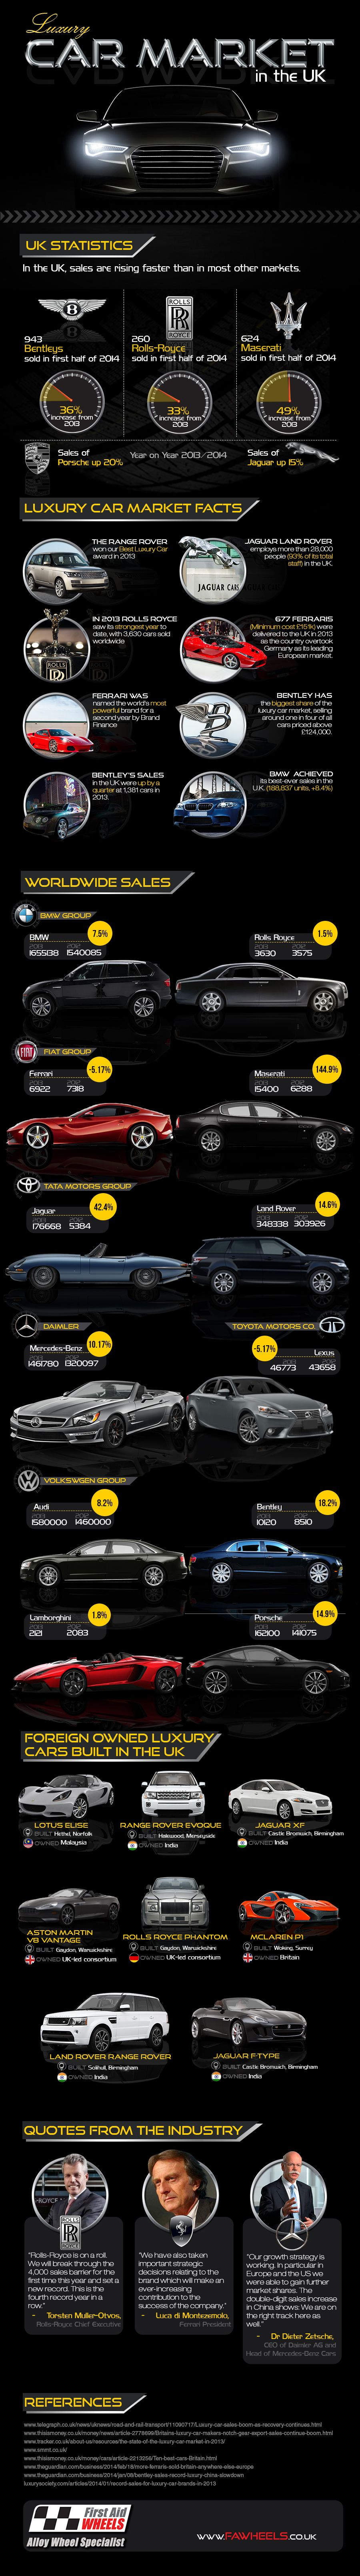 Luxury Car Market Growth in the UK